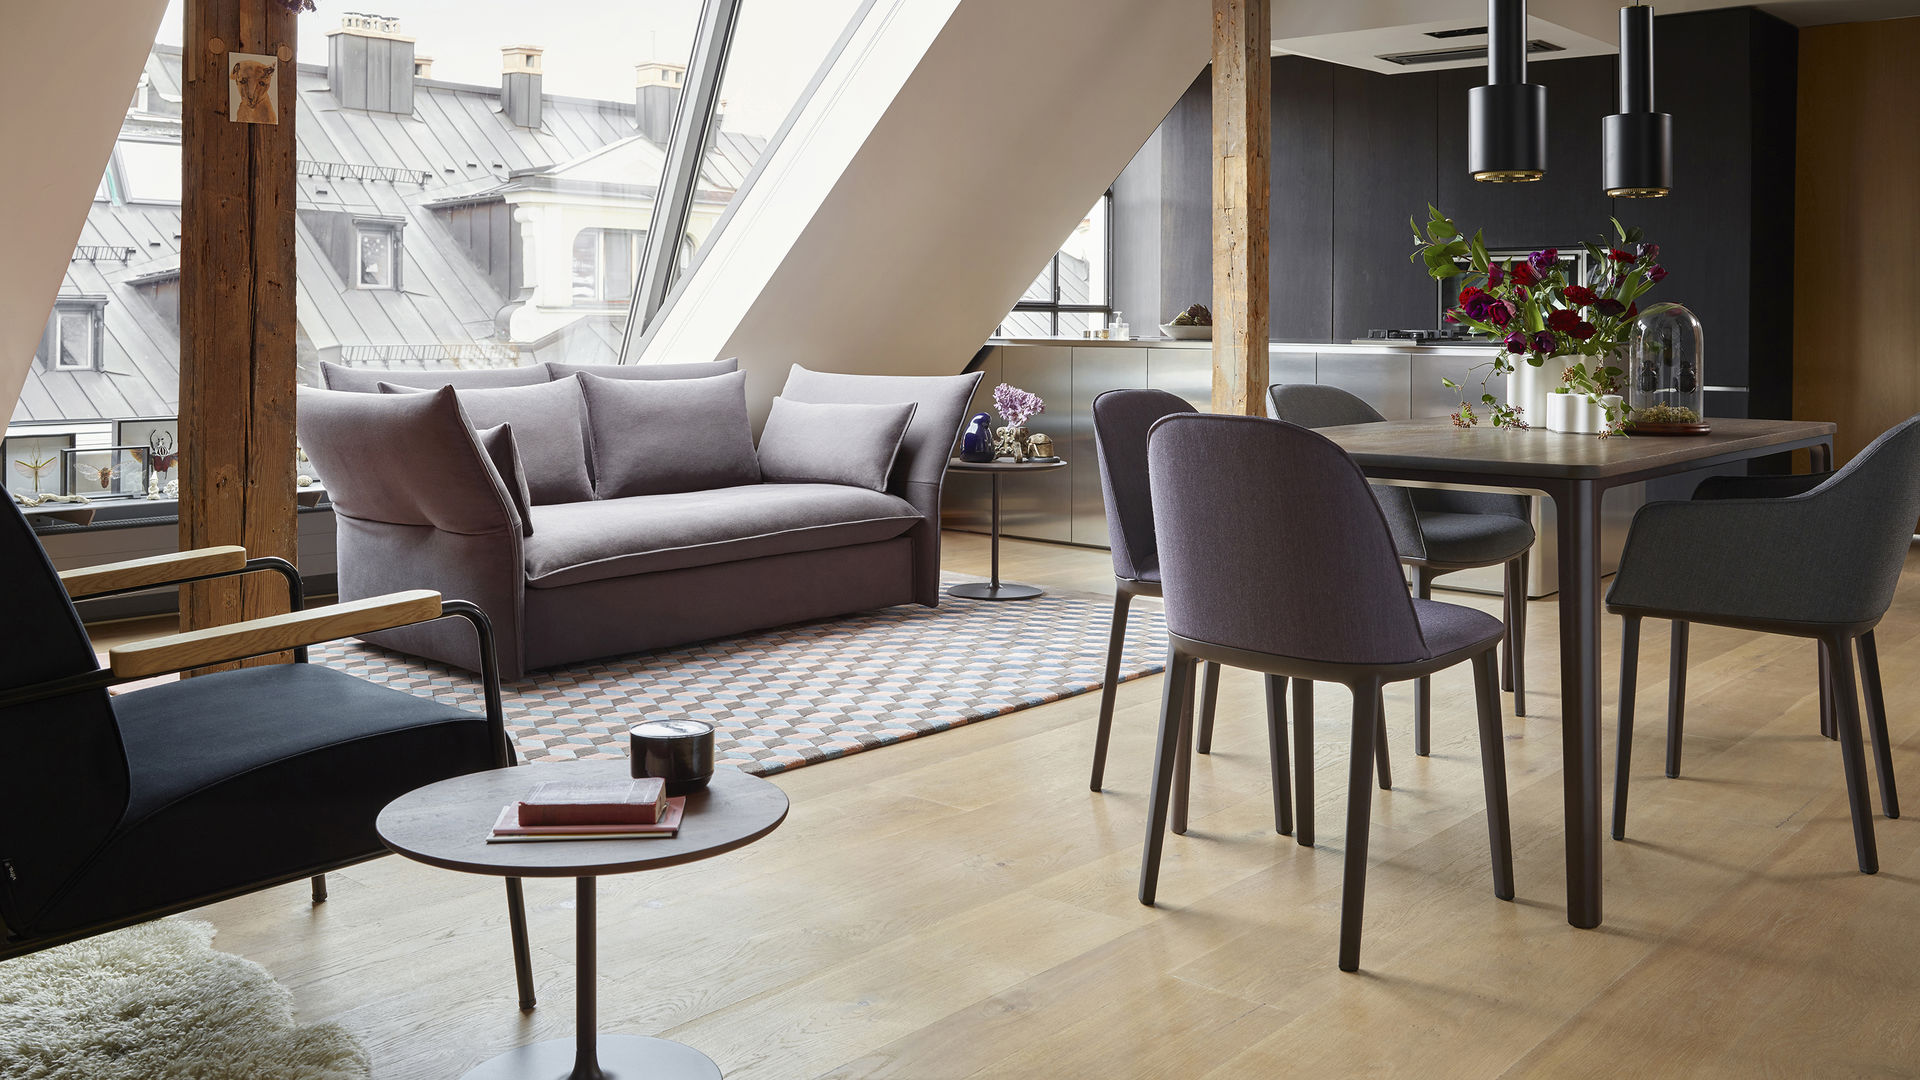 Plate Dining Table smoked oak Softshell Chairs Mariposa Sofa 2 Seater Fauteuil de Salon Occassional Low Table_web_16-9